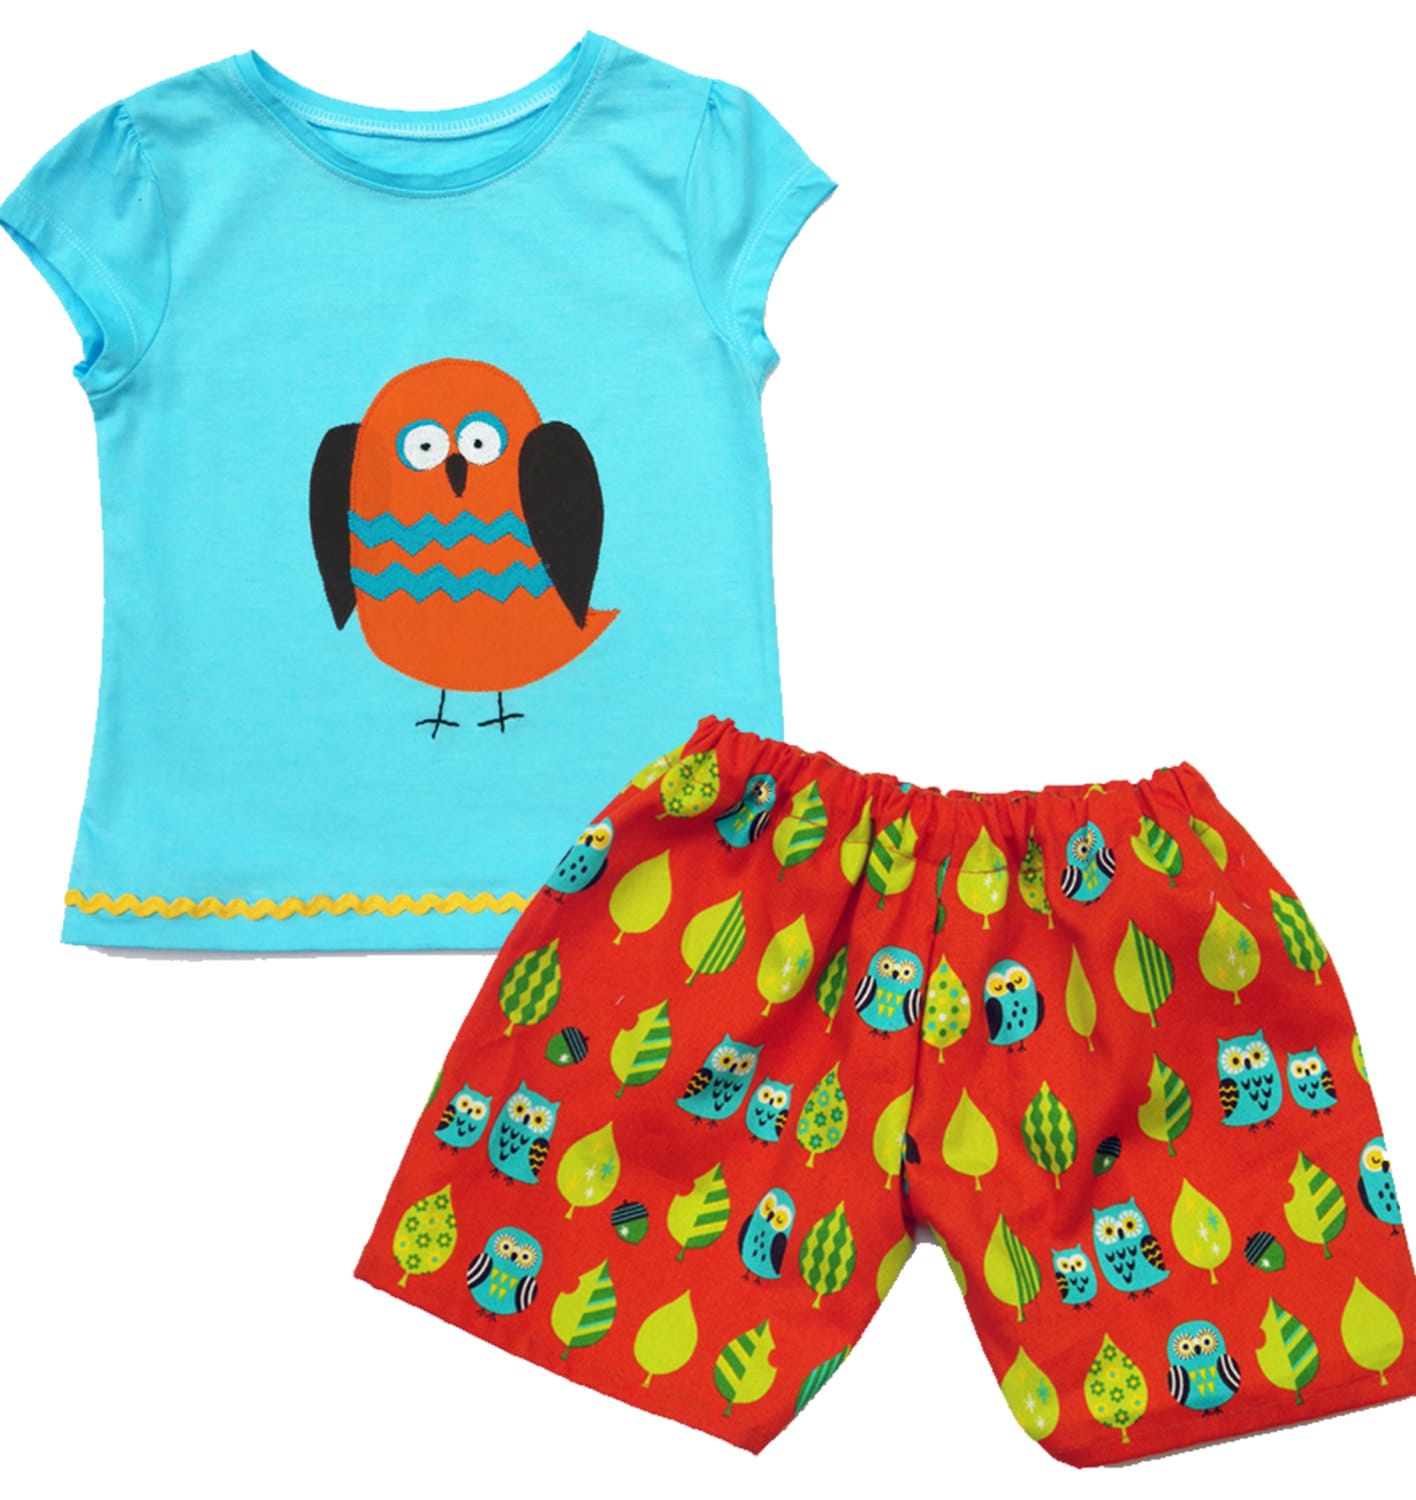 Kids Owl Shorts and Tee Shirt Boys Girls Baby Clothes